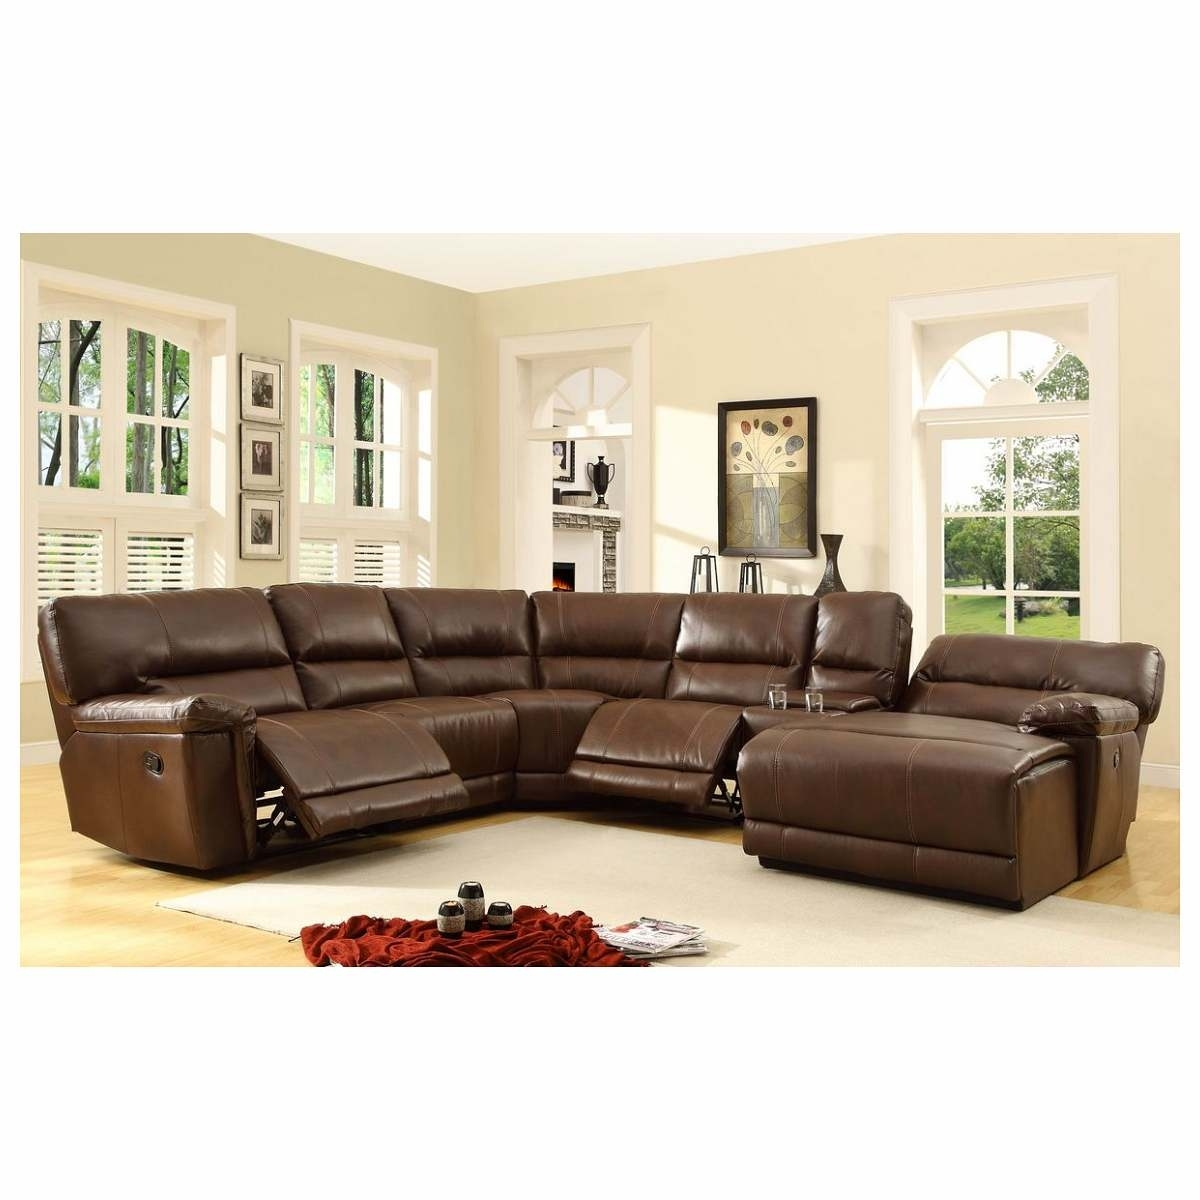 6 Pc Blythe Collection Brown Bonded Leather Match Upholstered throughout 6 Piece Leather Sectional Sofas (Image 3 of 10)